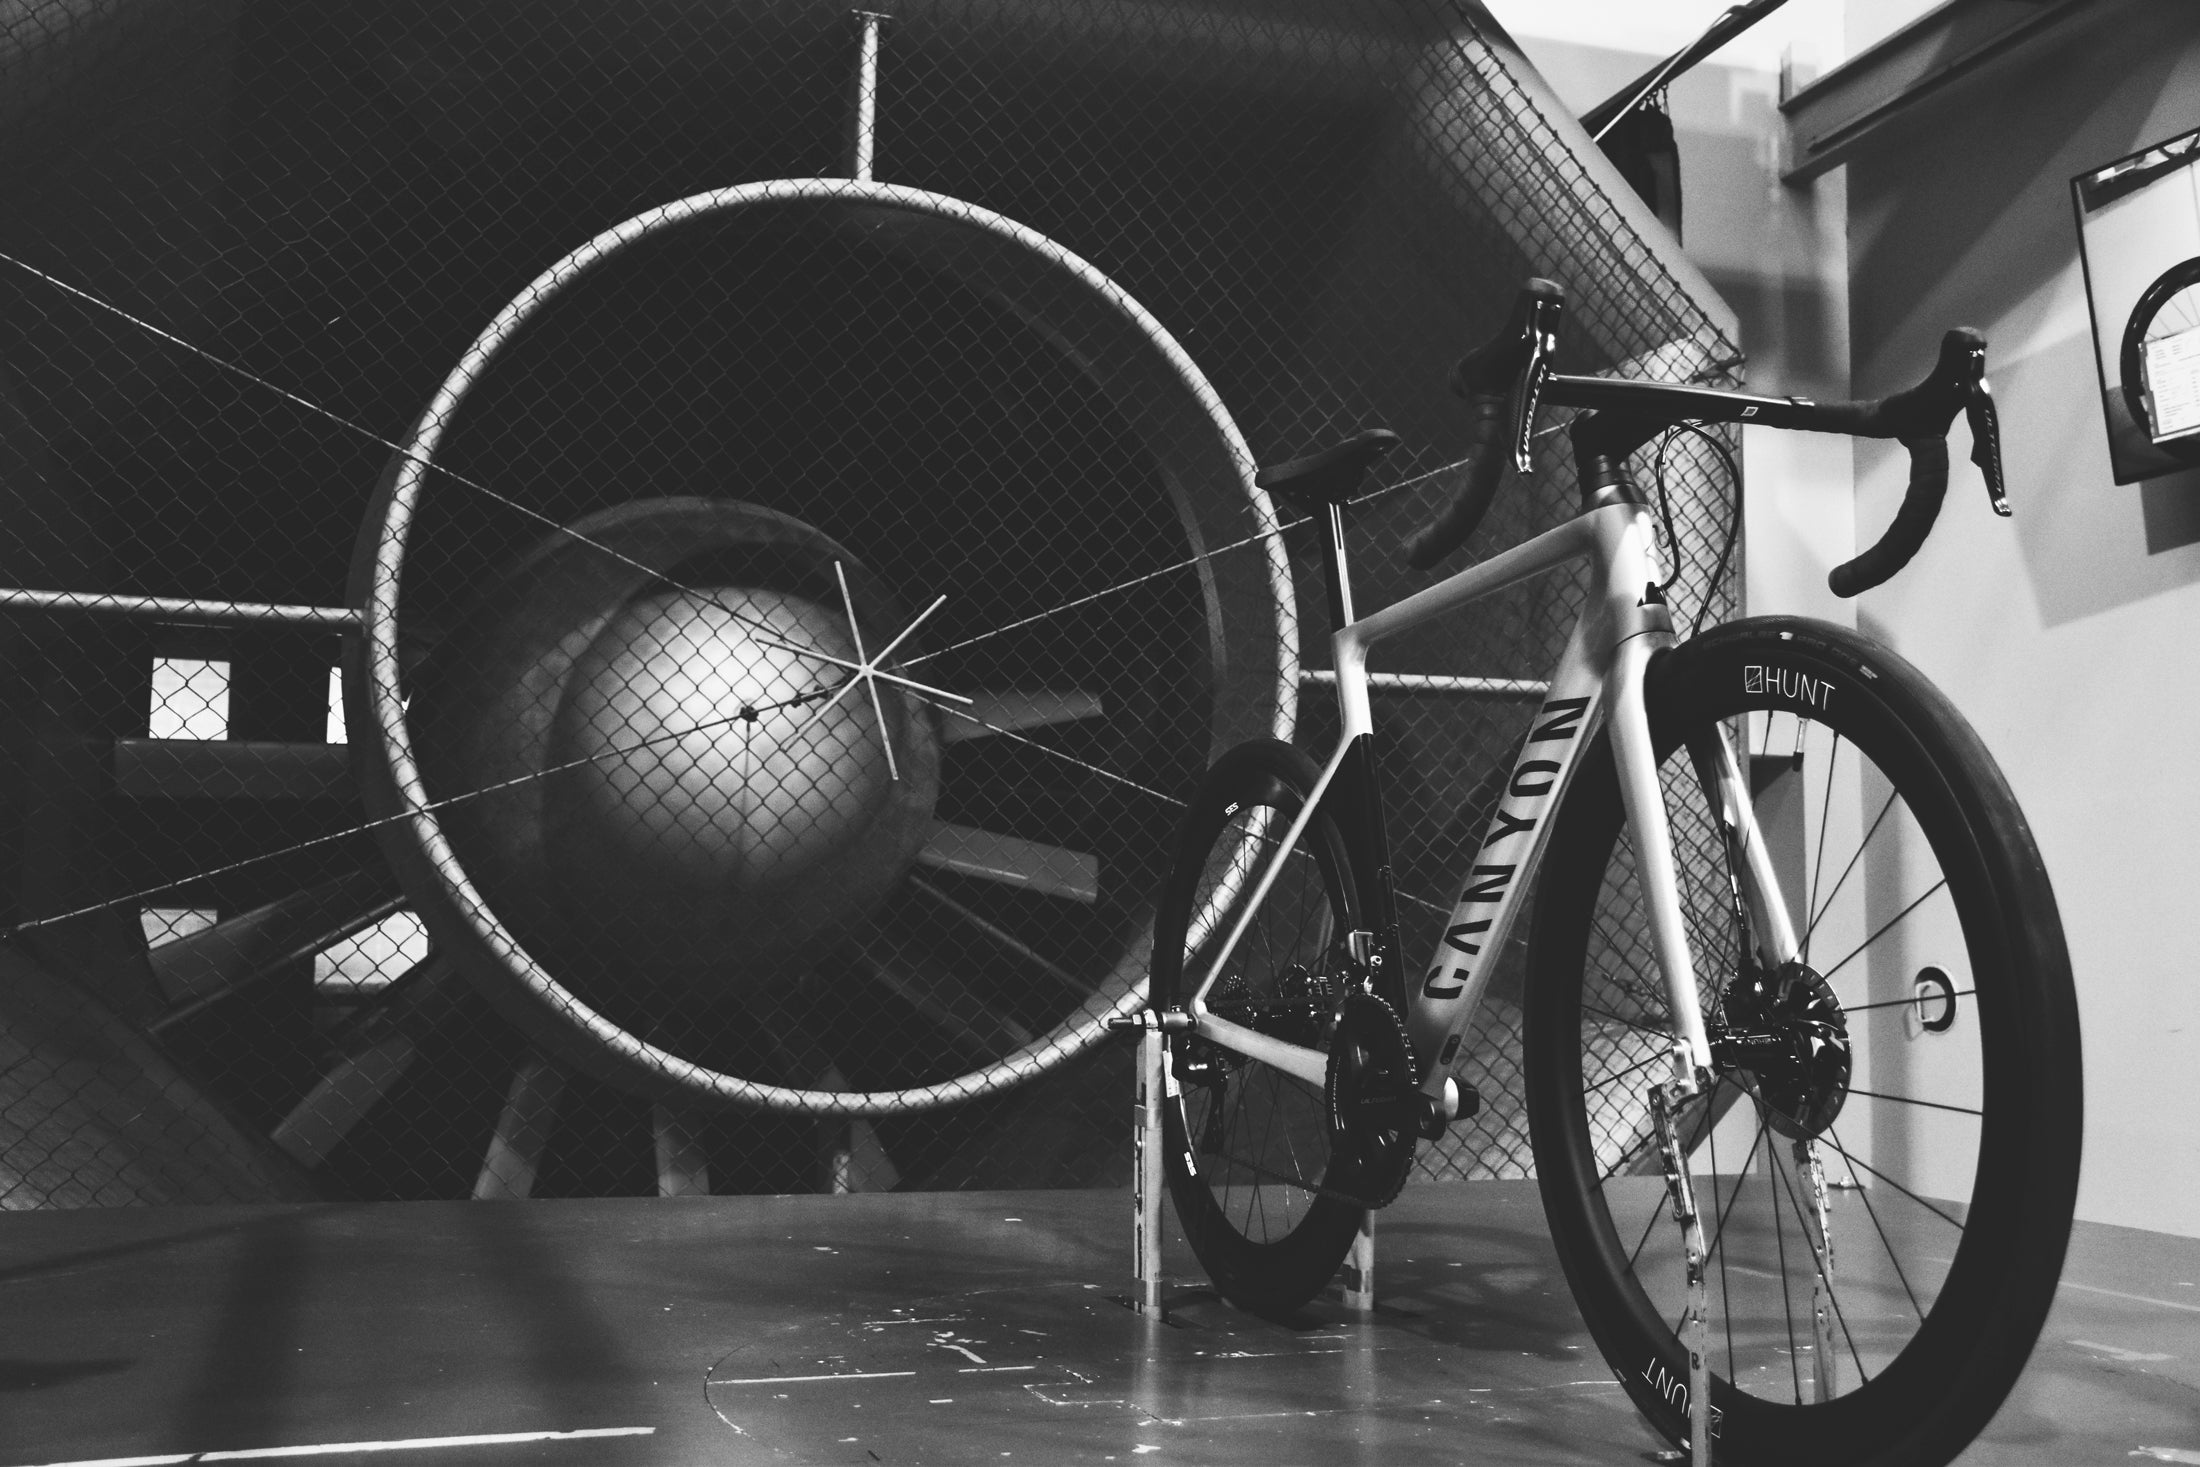 Canyon Bike with Hunt Wheels in a wind tunnel test